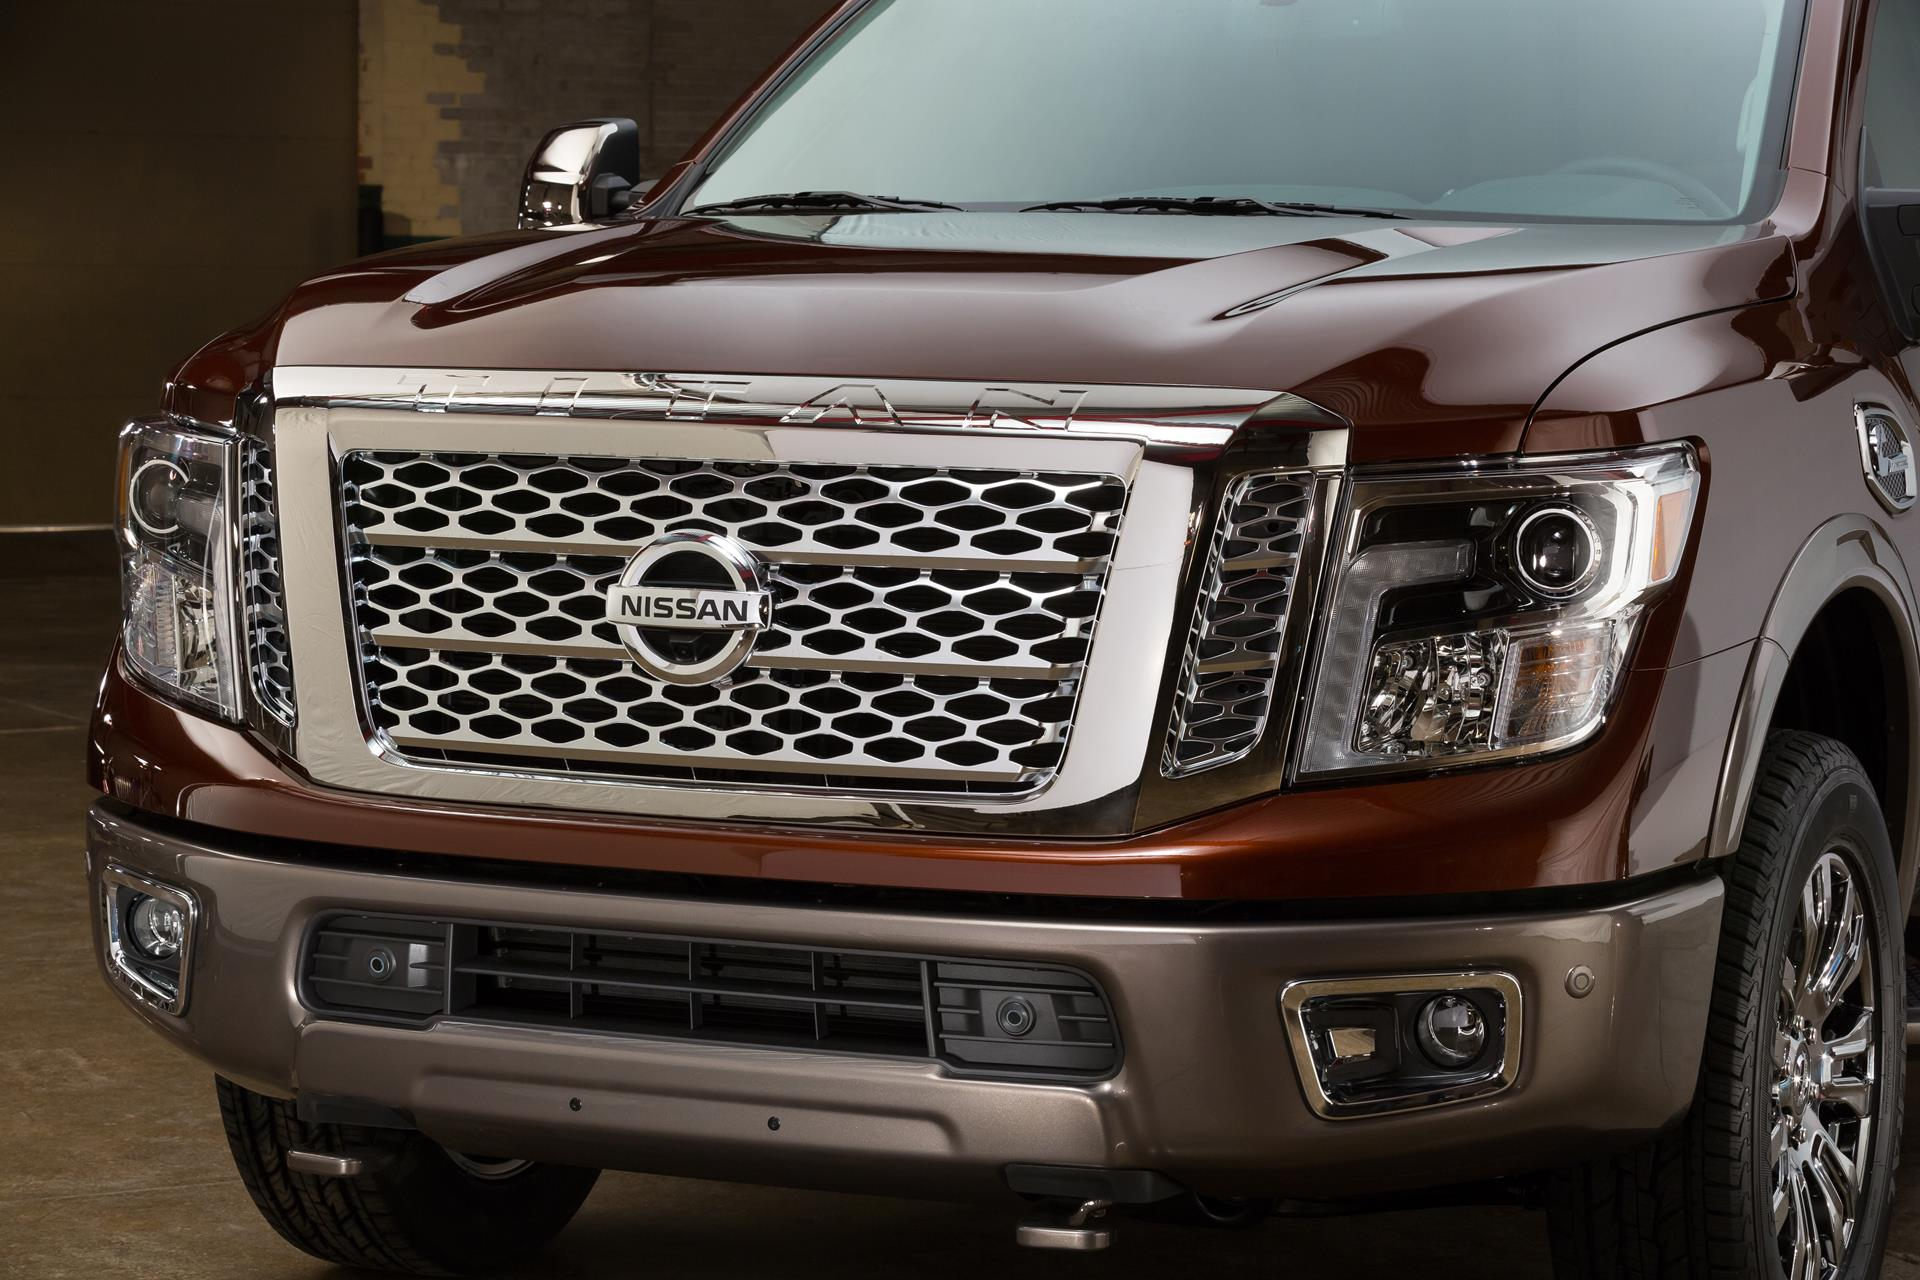 nissan titan pictures, pictures of nissan titan